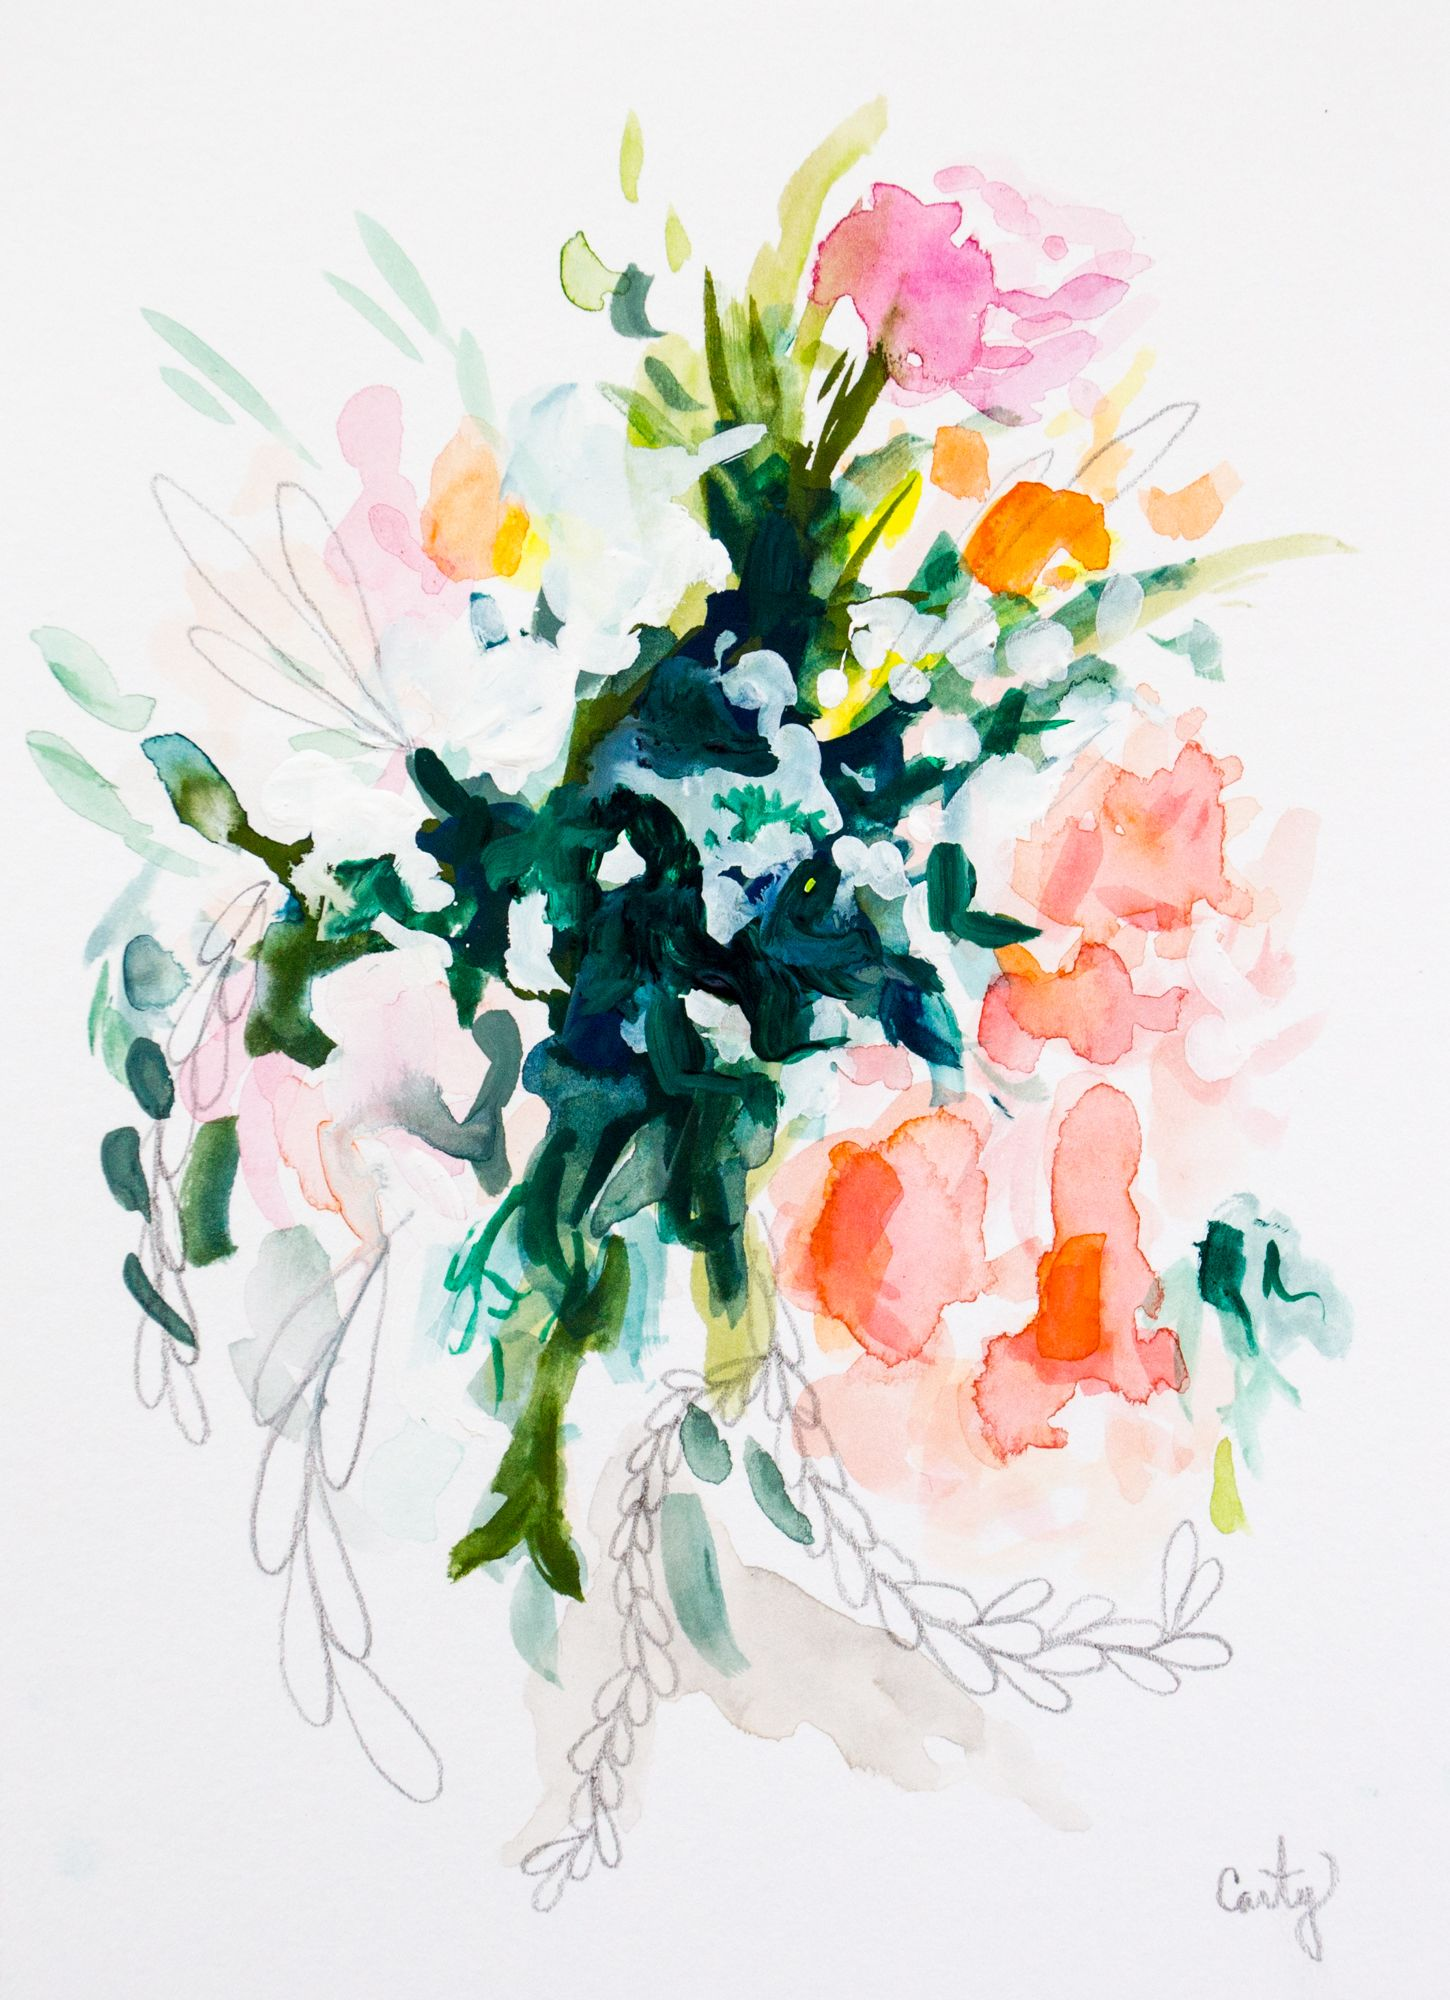 Floral Painting Abstract In Watercolor Megan Carty